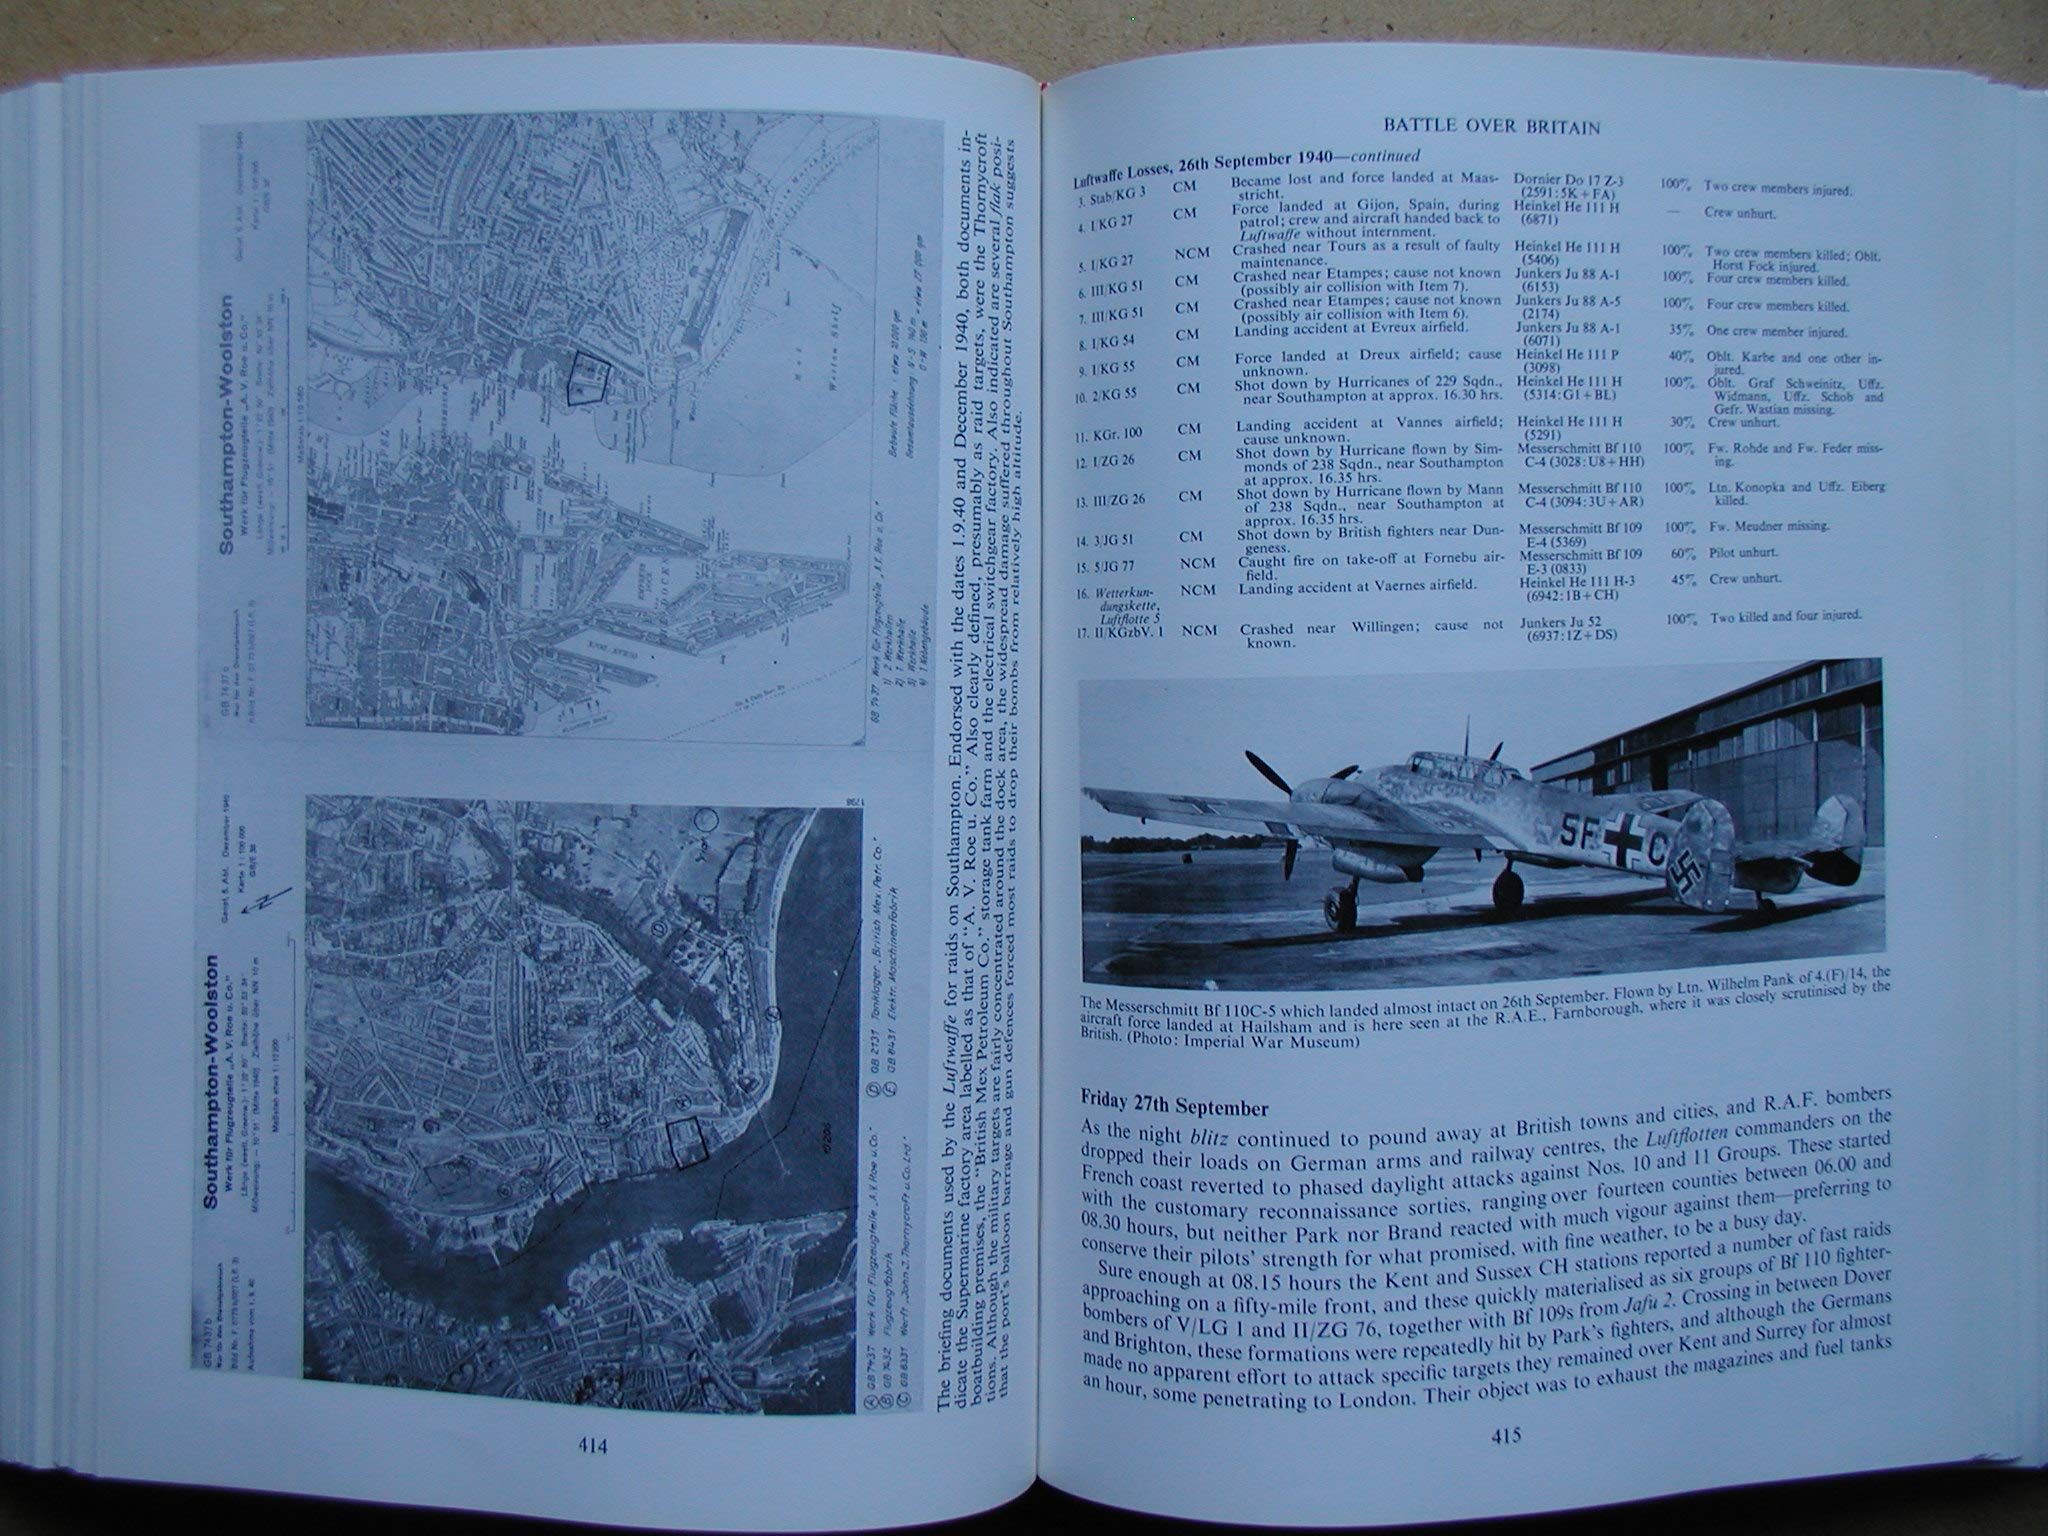 Battle over Britain: A History of the German Air Assaults on